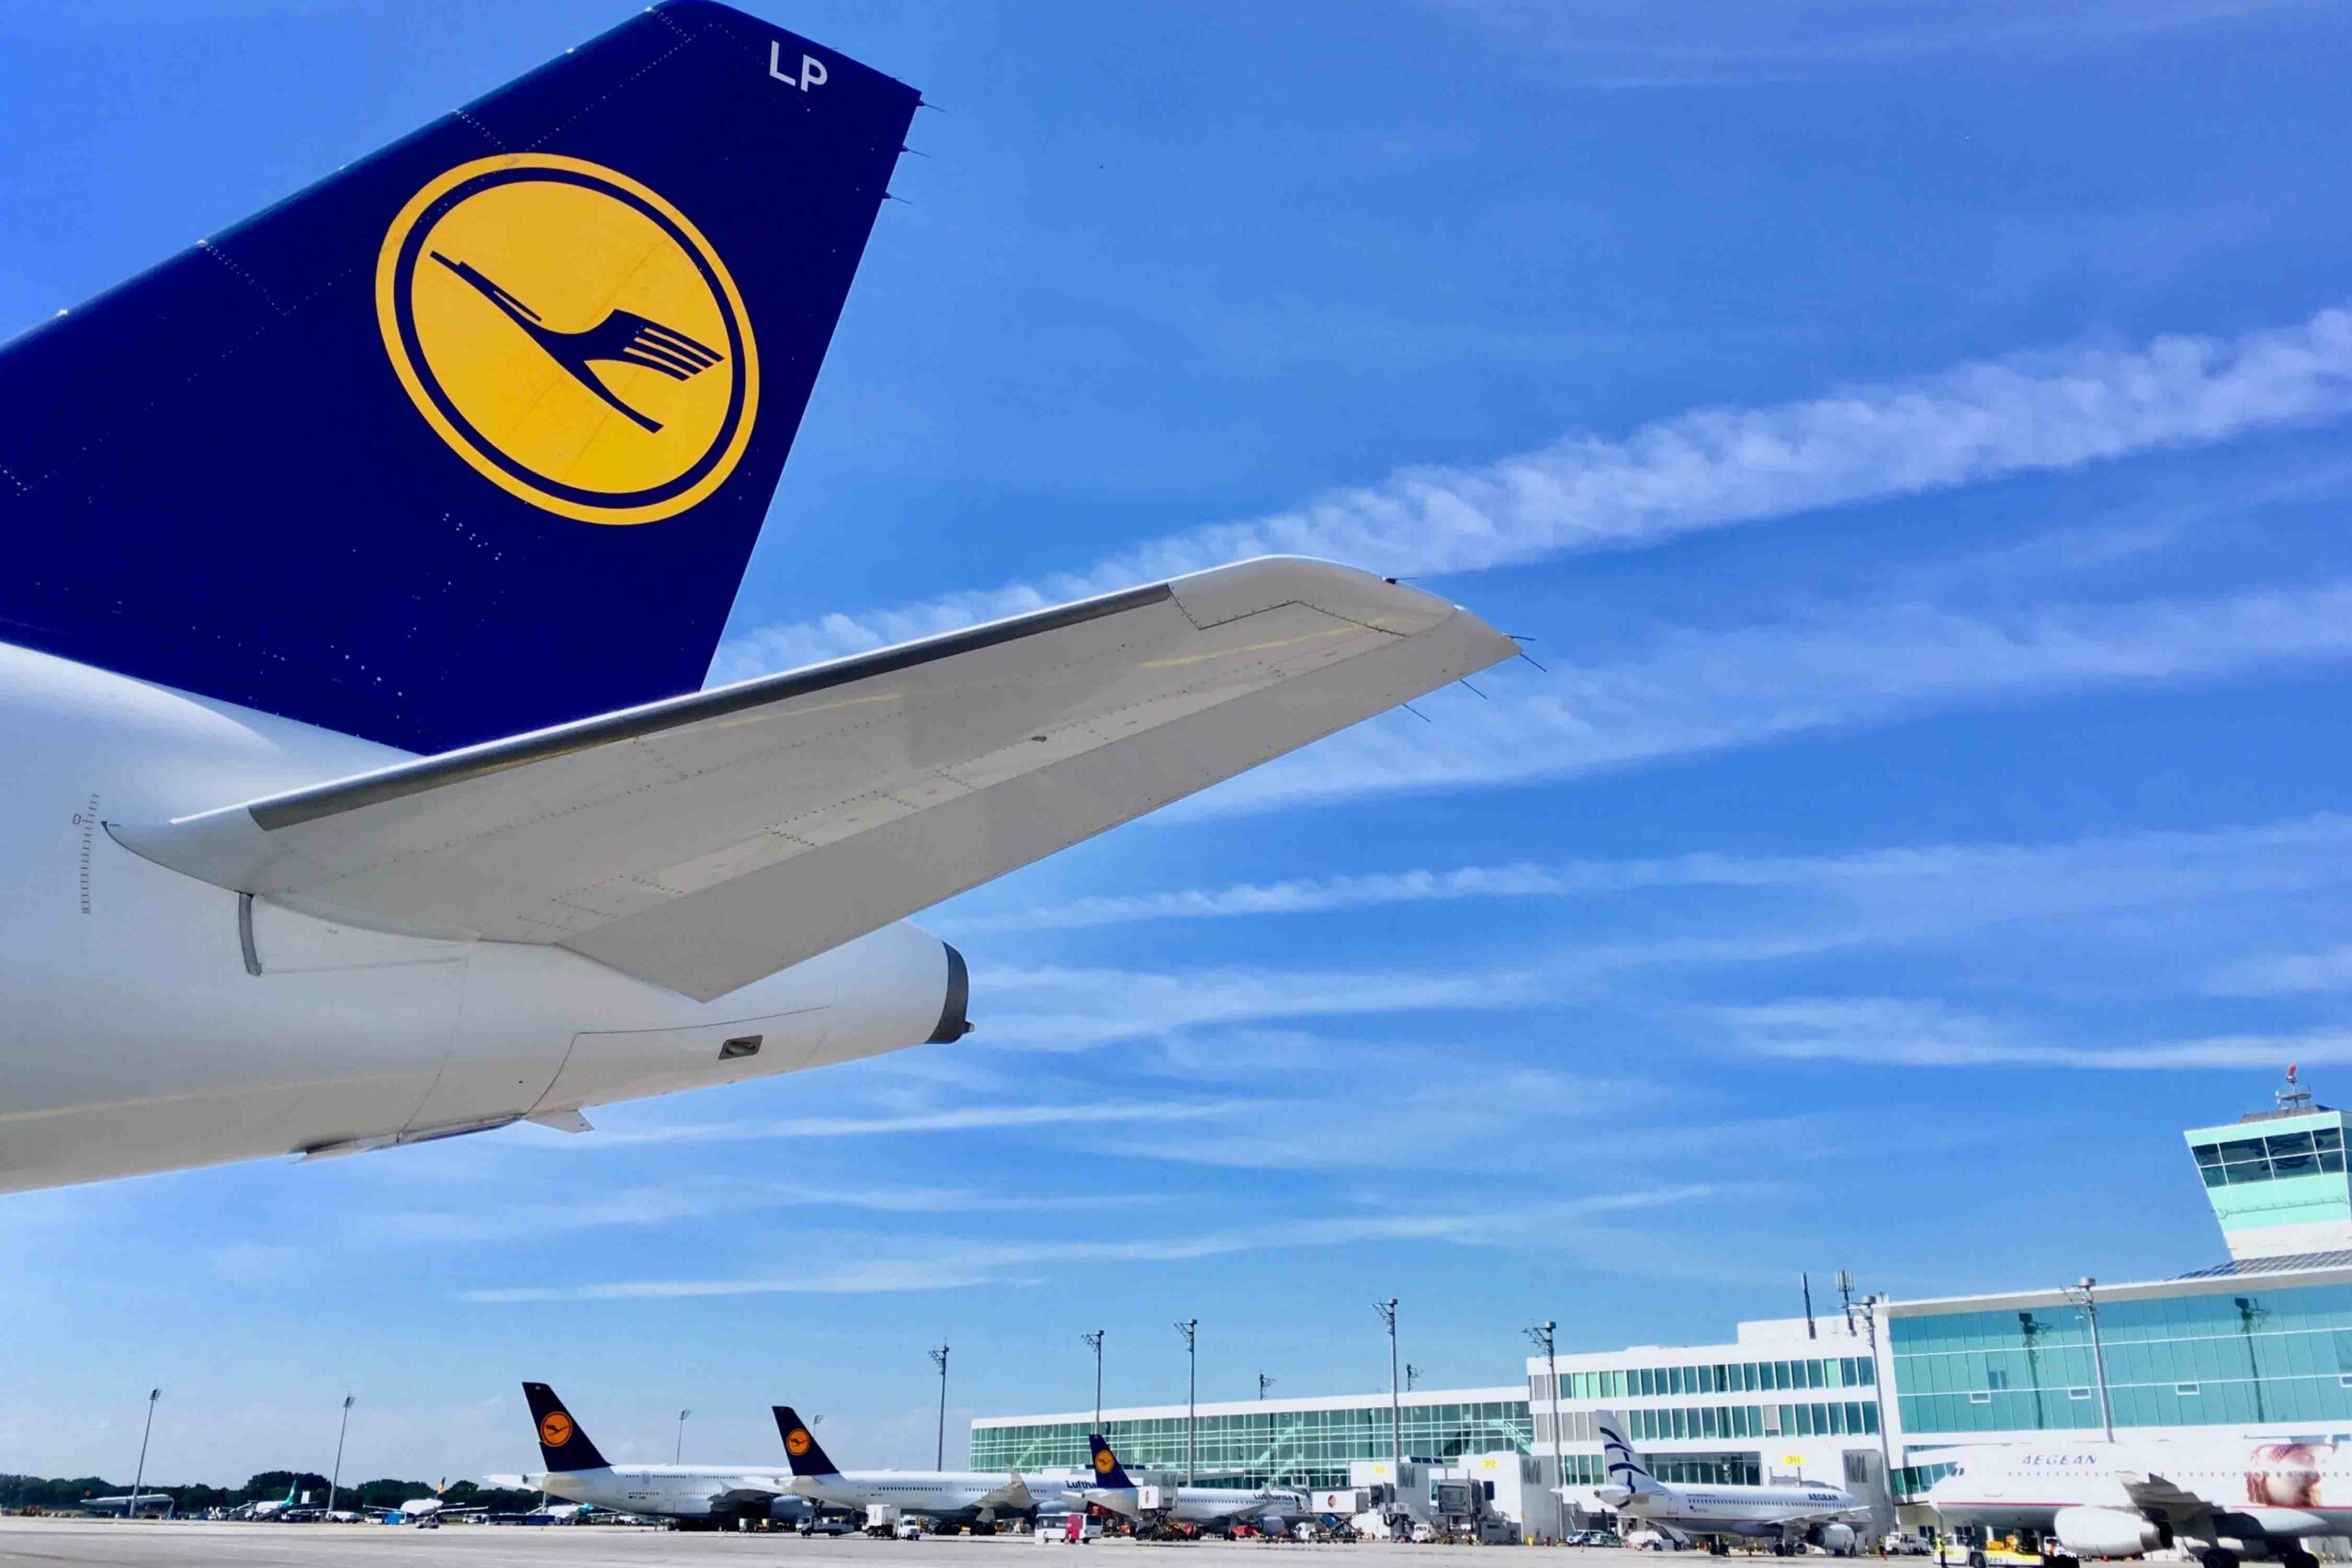 brand-new Boeing 777F aircraft is being added to Lufthansa Cargo's Atlas Logistic NEtwork